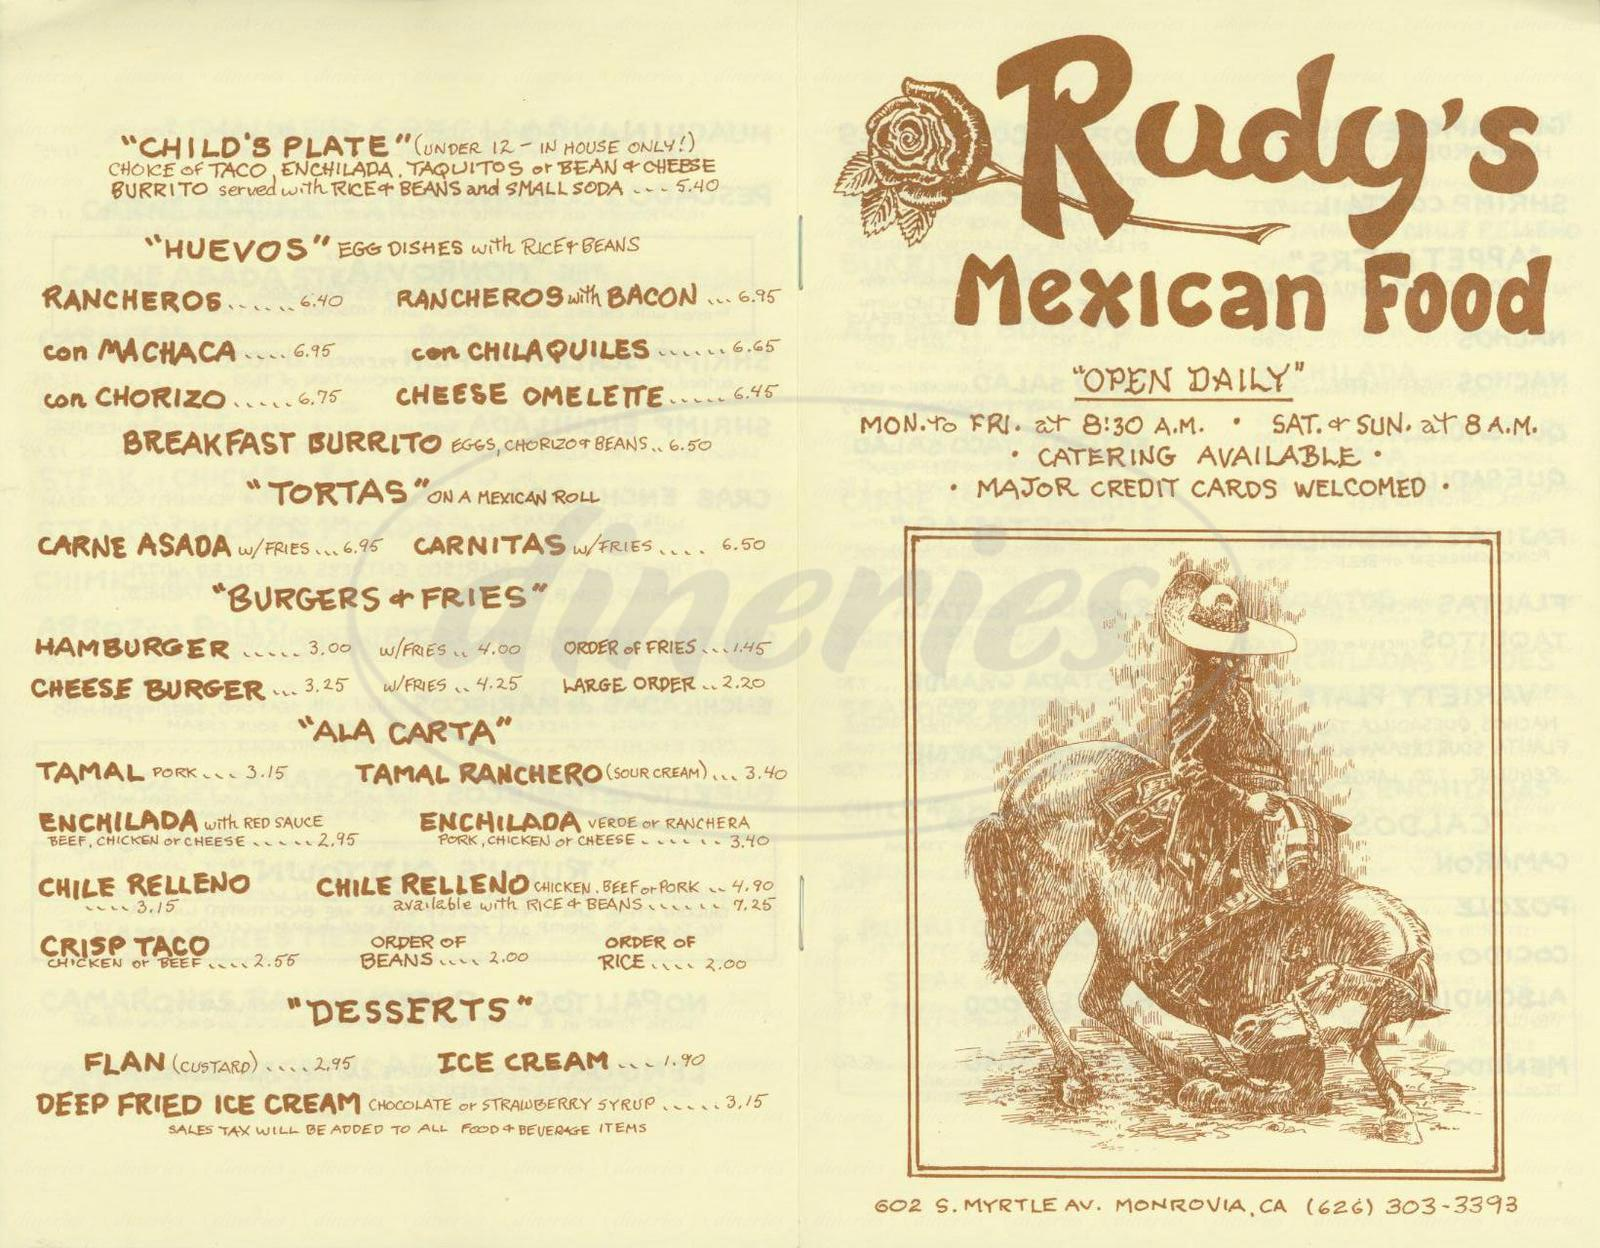 menu for Rudys Mexican Food